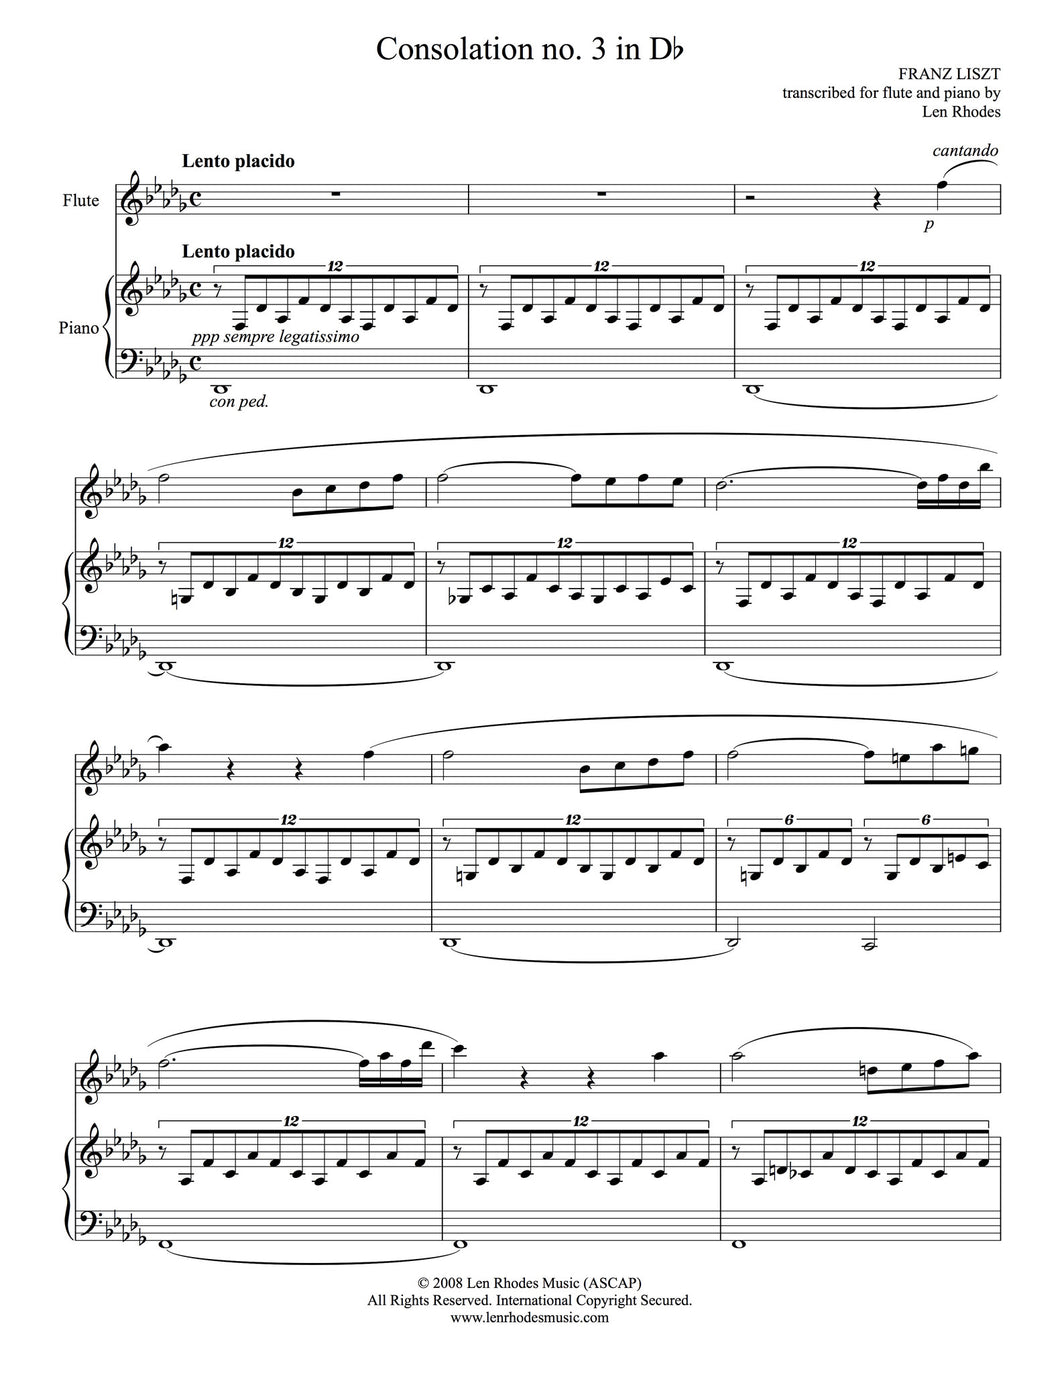 Liszt - Consolation in D flat, arranged for Flute and Piano